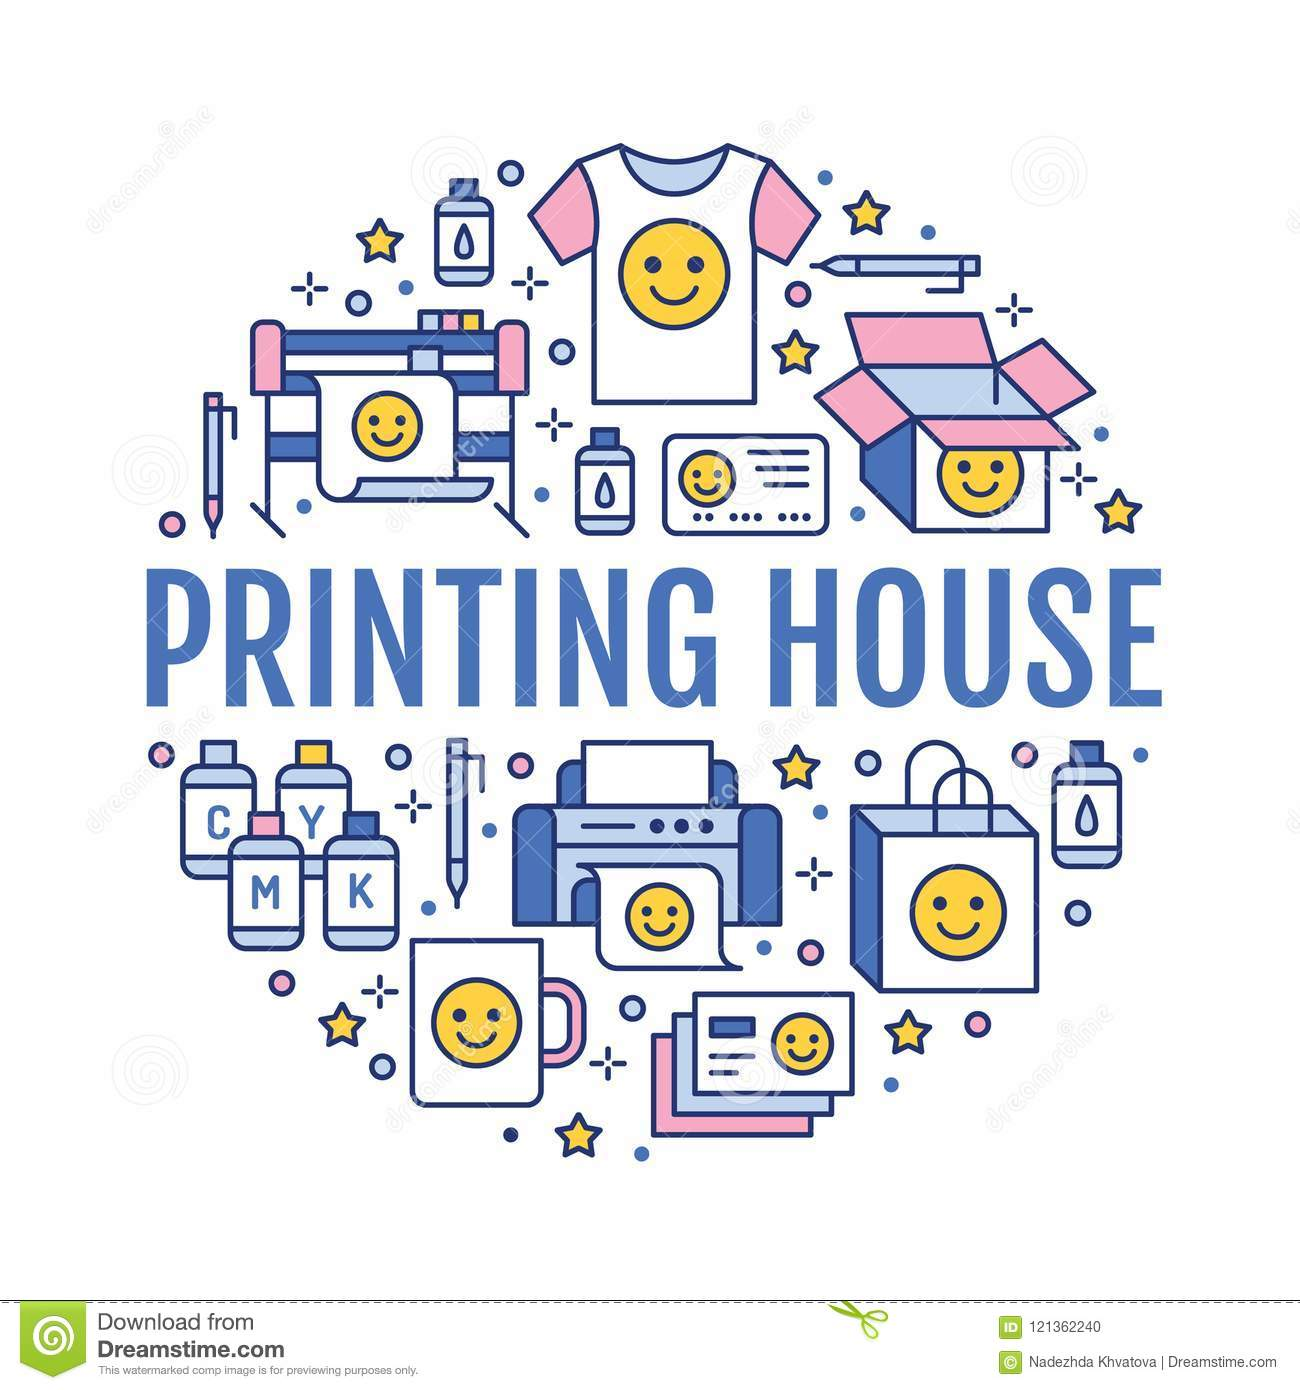 Printing house circle poster with flat line icons. Print shop equipment - printer, scanner, offset machine, plotter